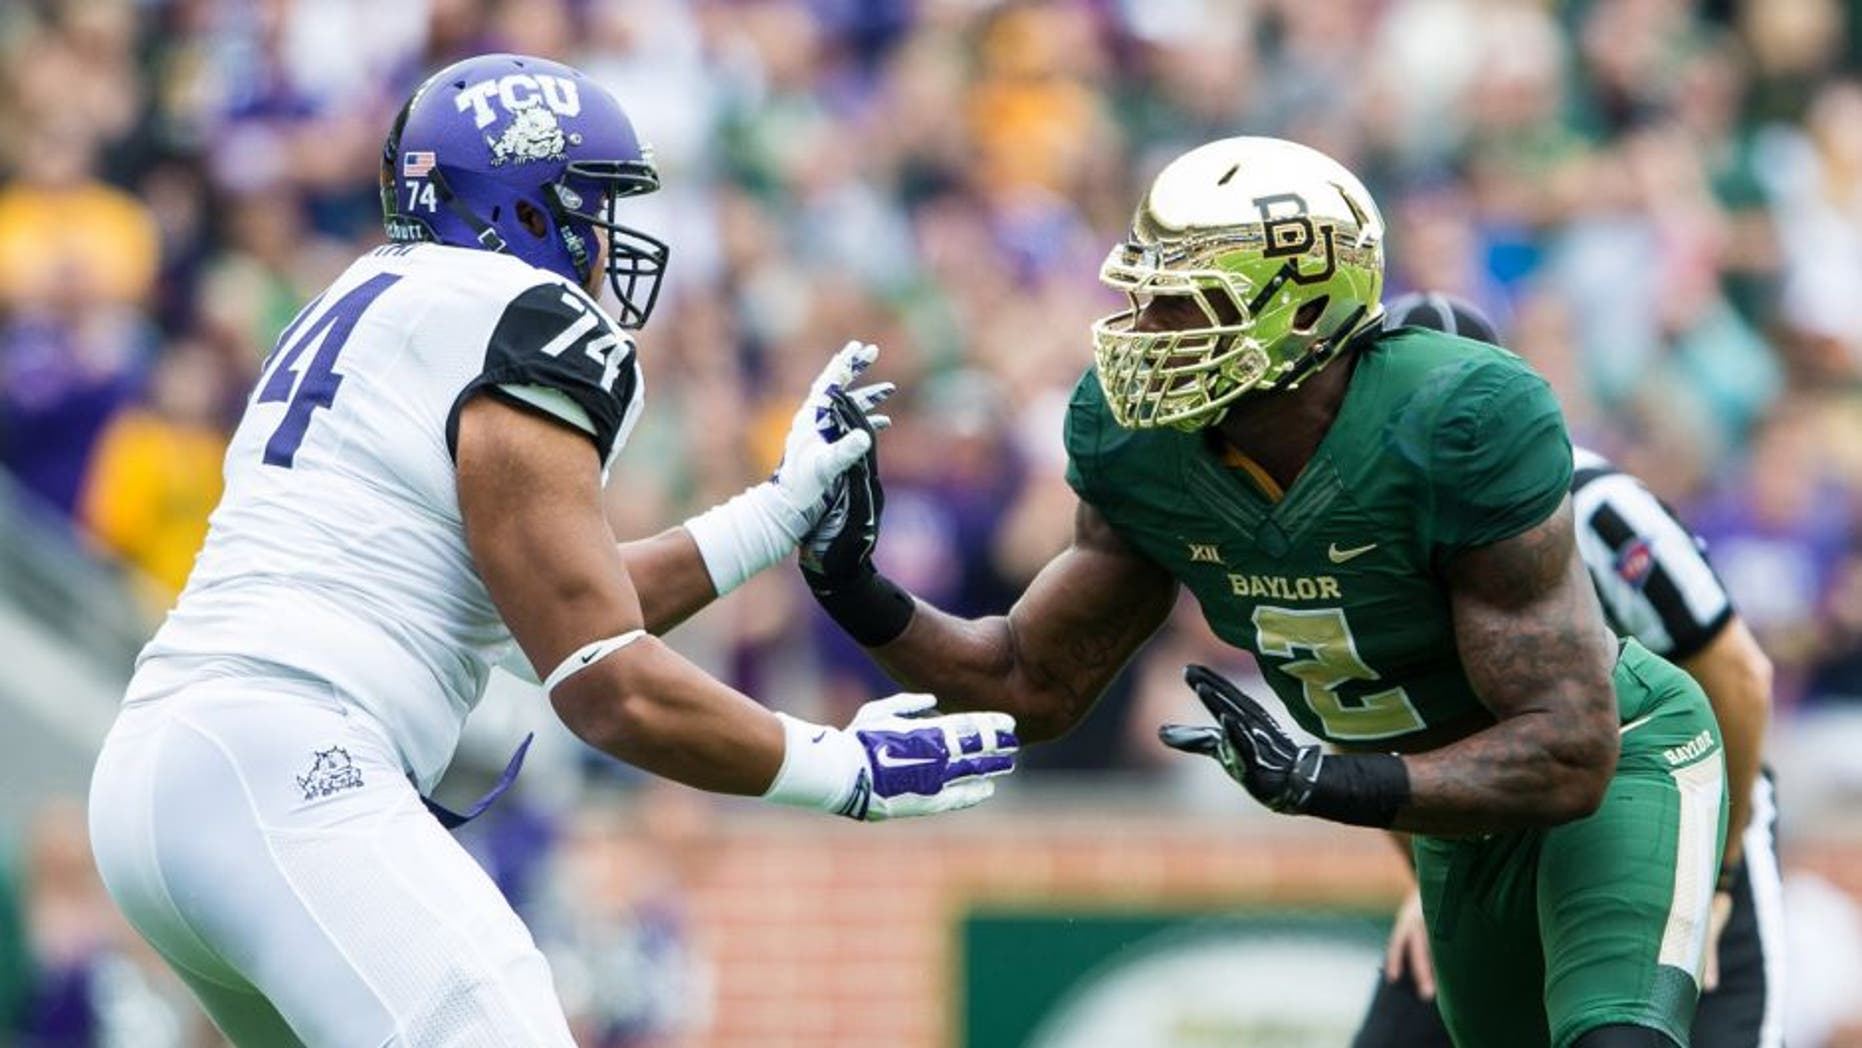 Oct 11, 2014; Waco, TX, USA; TCU Horned Frogs offensive tackle Halapoulivaati Vaitai (74) faces off against Baylor Bears defensive end Shawn Oakman (2) during the game at McLane Stadium. The Bears defeat Horned Frogs 61-58. Mandatory Credit: Jerome Miron-USA TODAY Sports